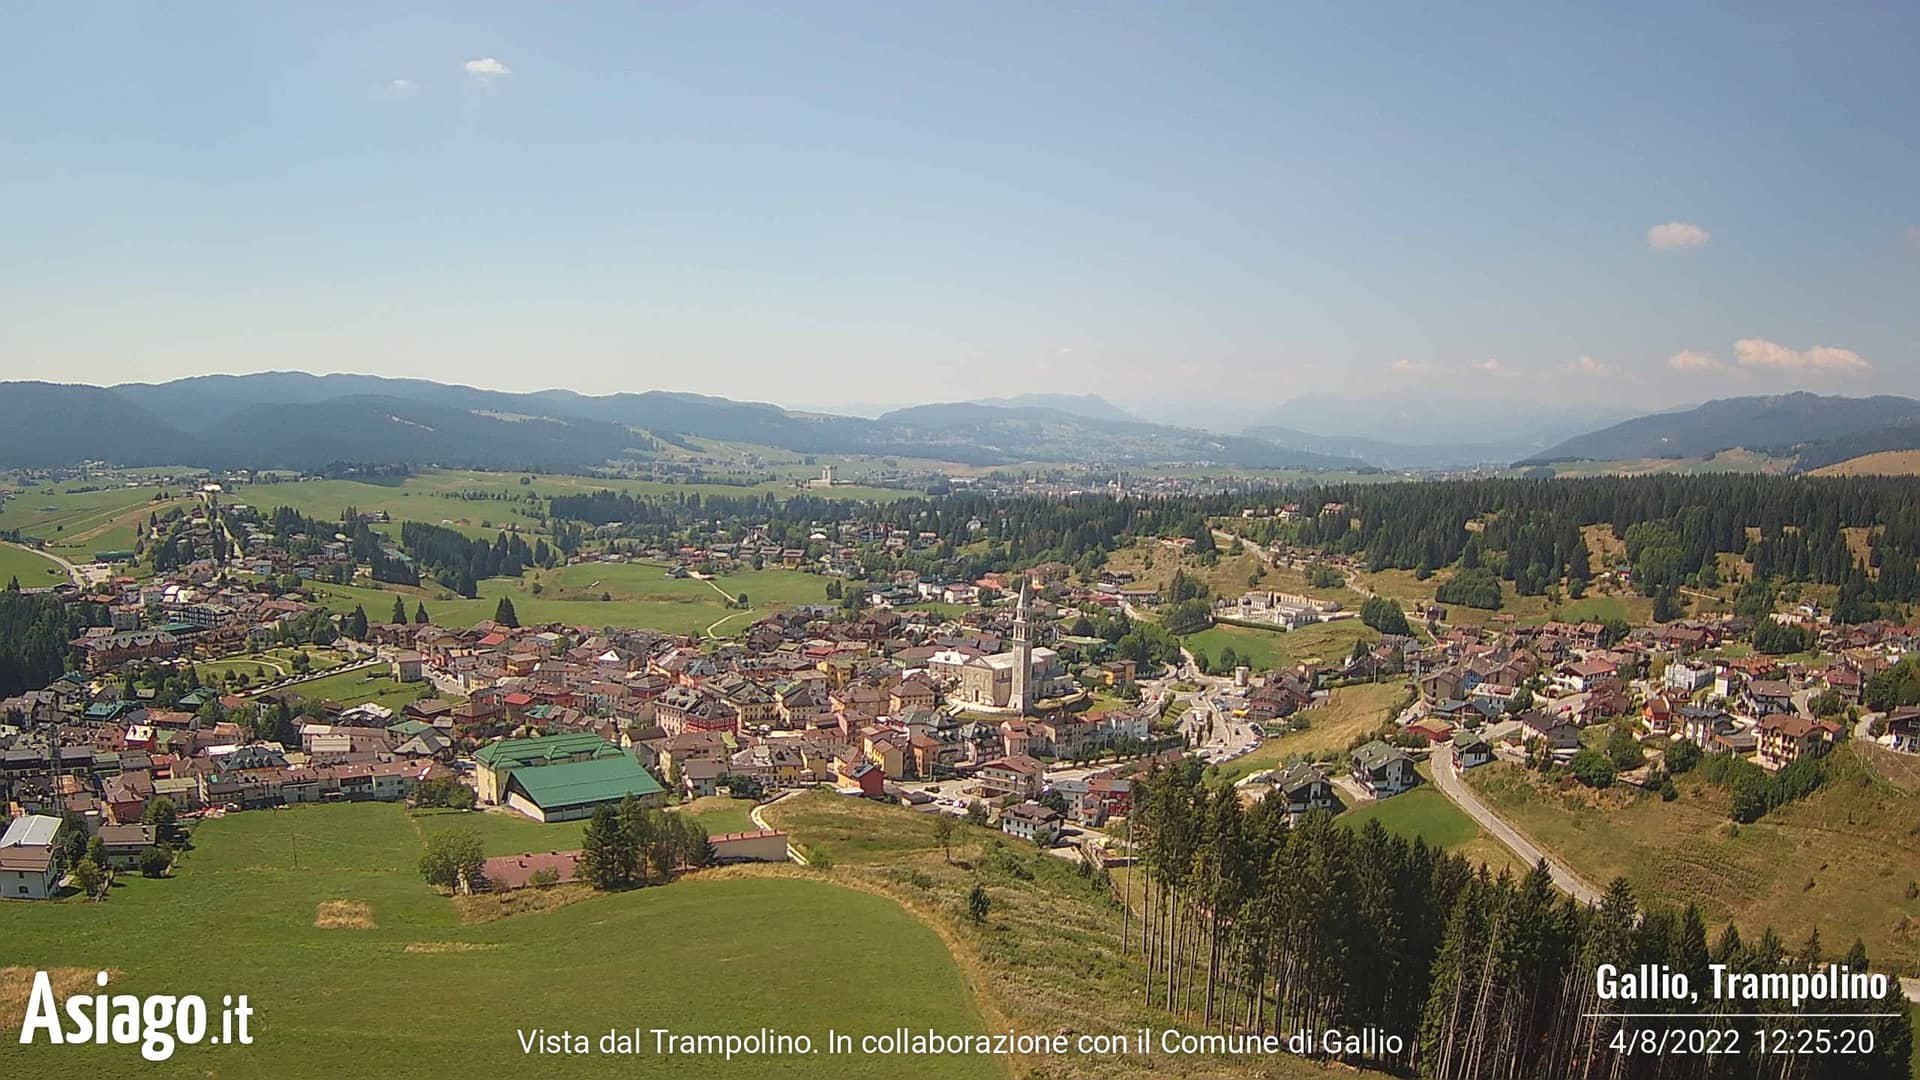 Webcam live di Asiago.It dal trampolino di Gallio